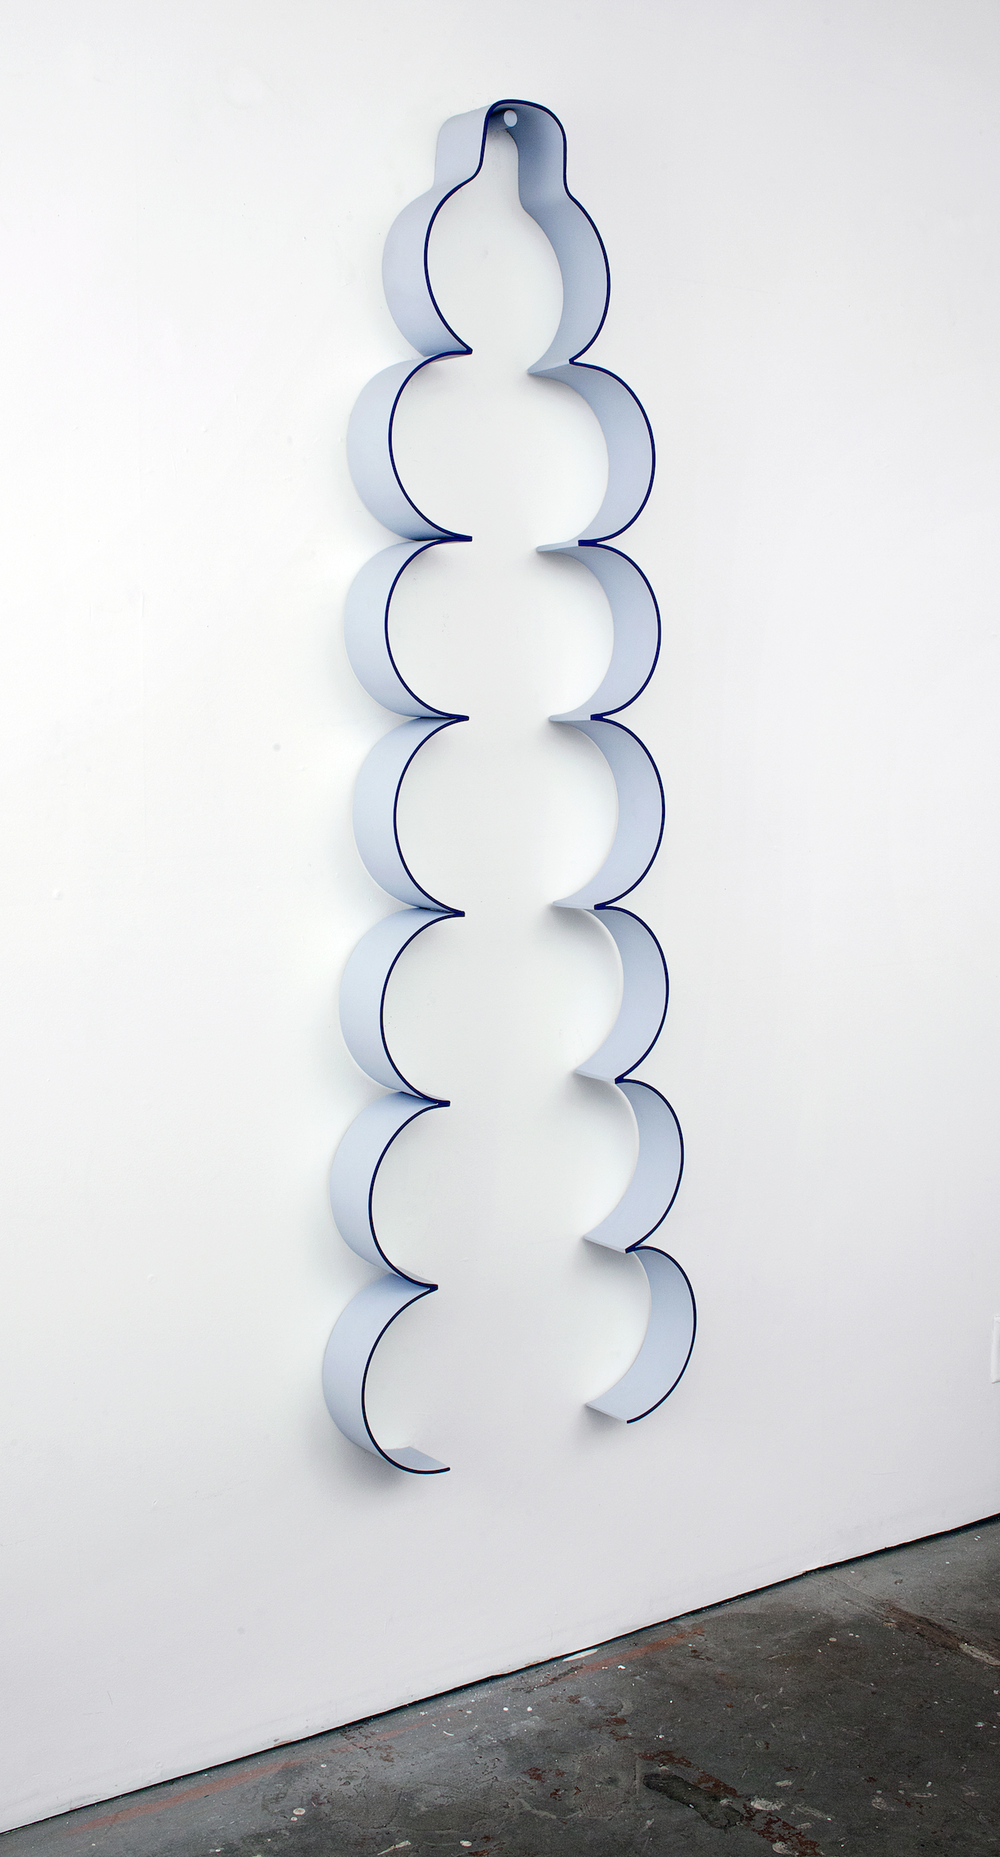 Lisa Williamson  Up-Do  2012 Acrylic on powder-coated steel 75h x 23w x 4d LW094